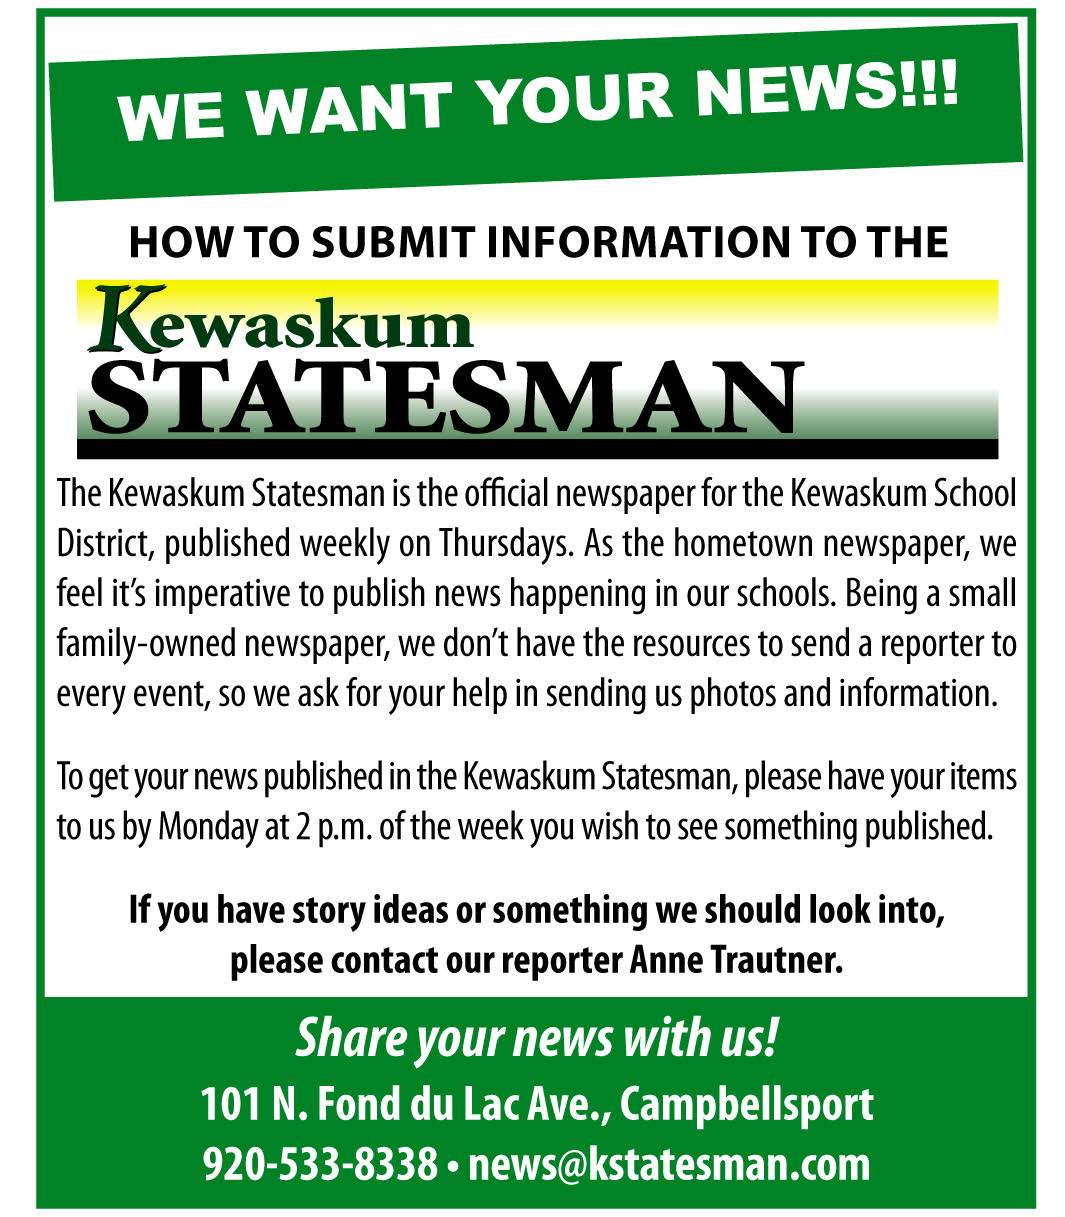 Submit News - Kewaskum Statesman